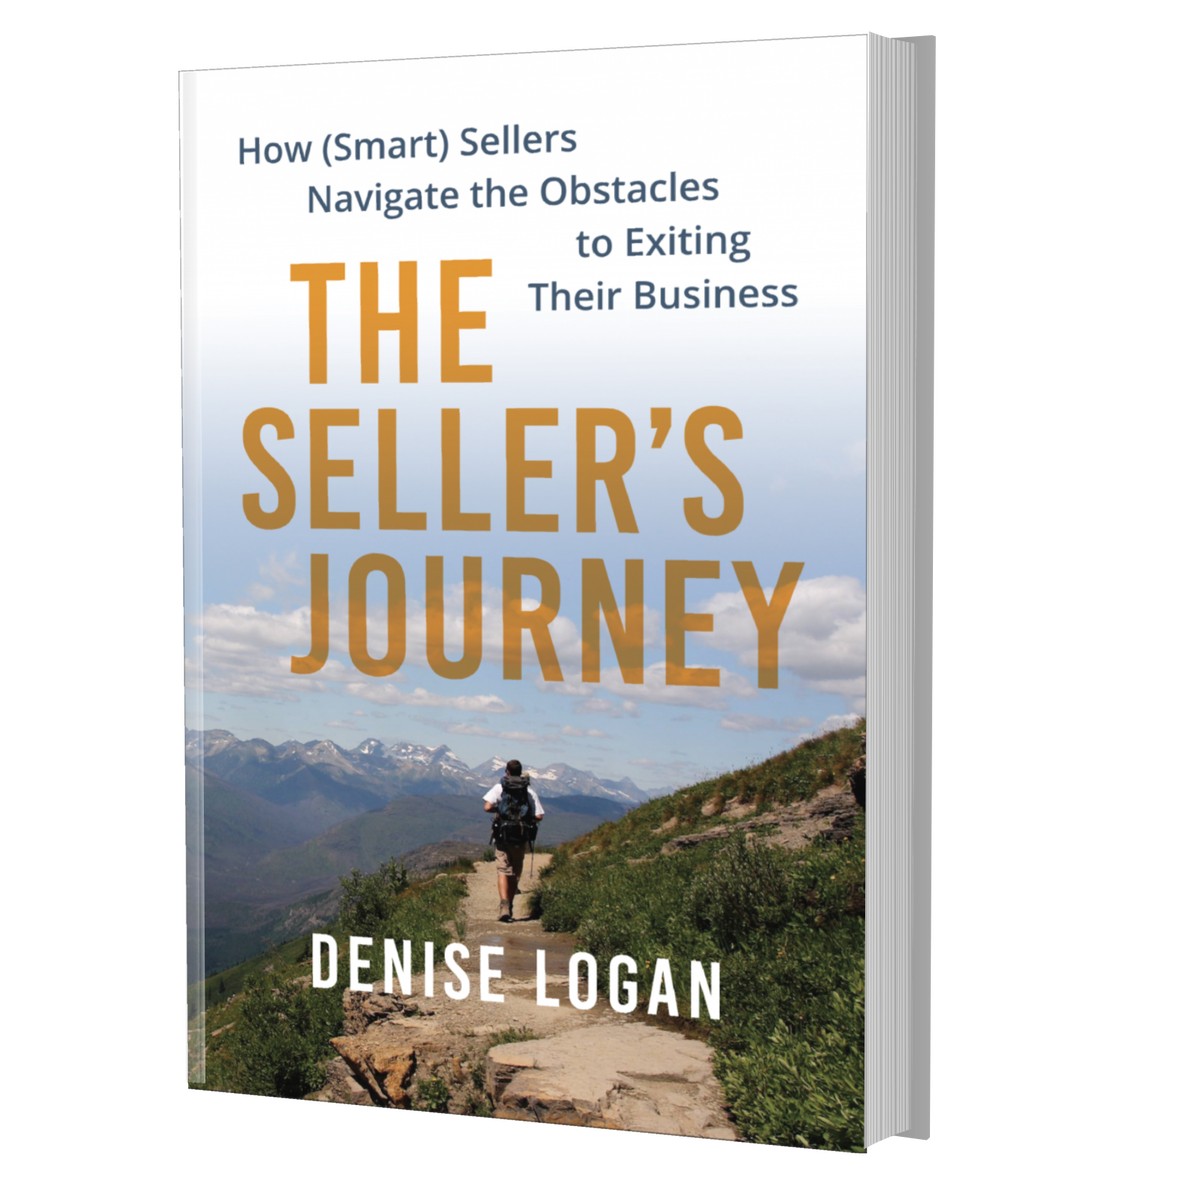 Image of The Seller's Journey